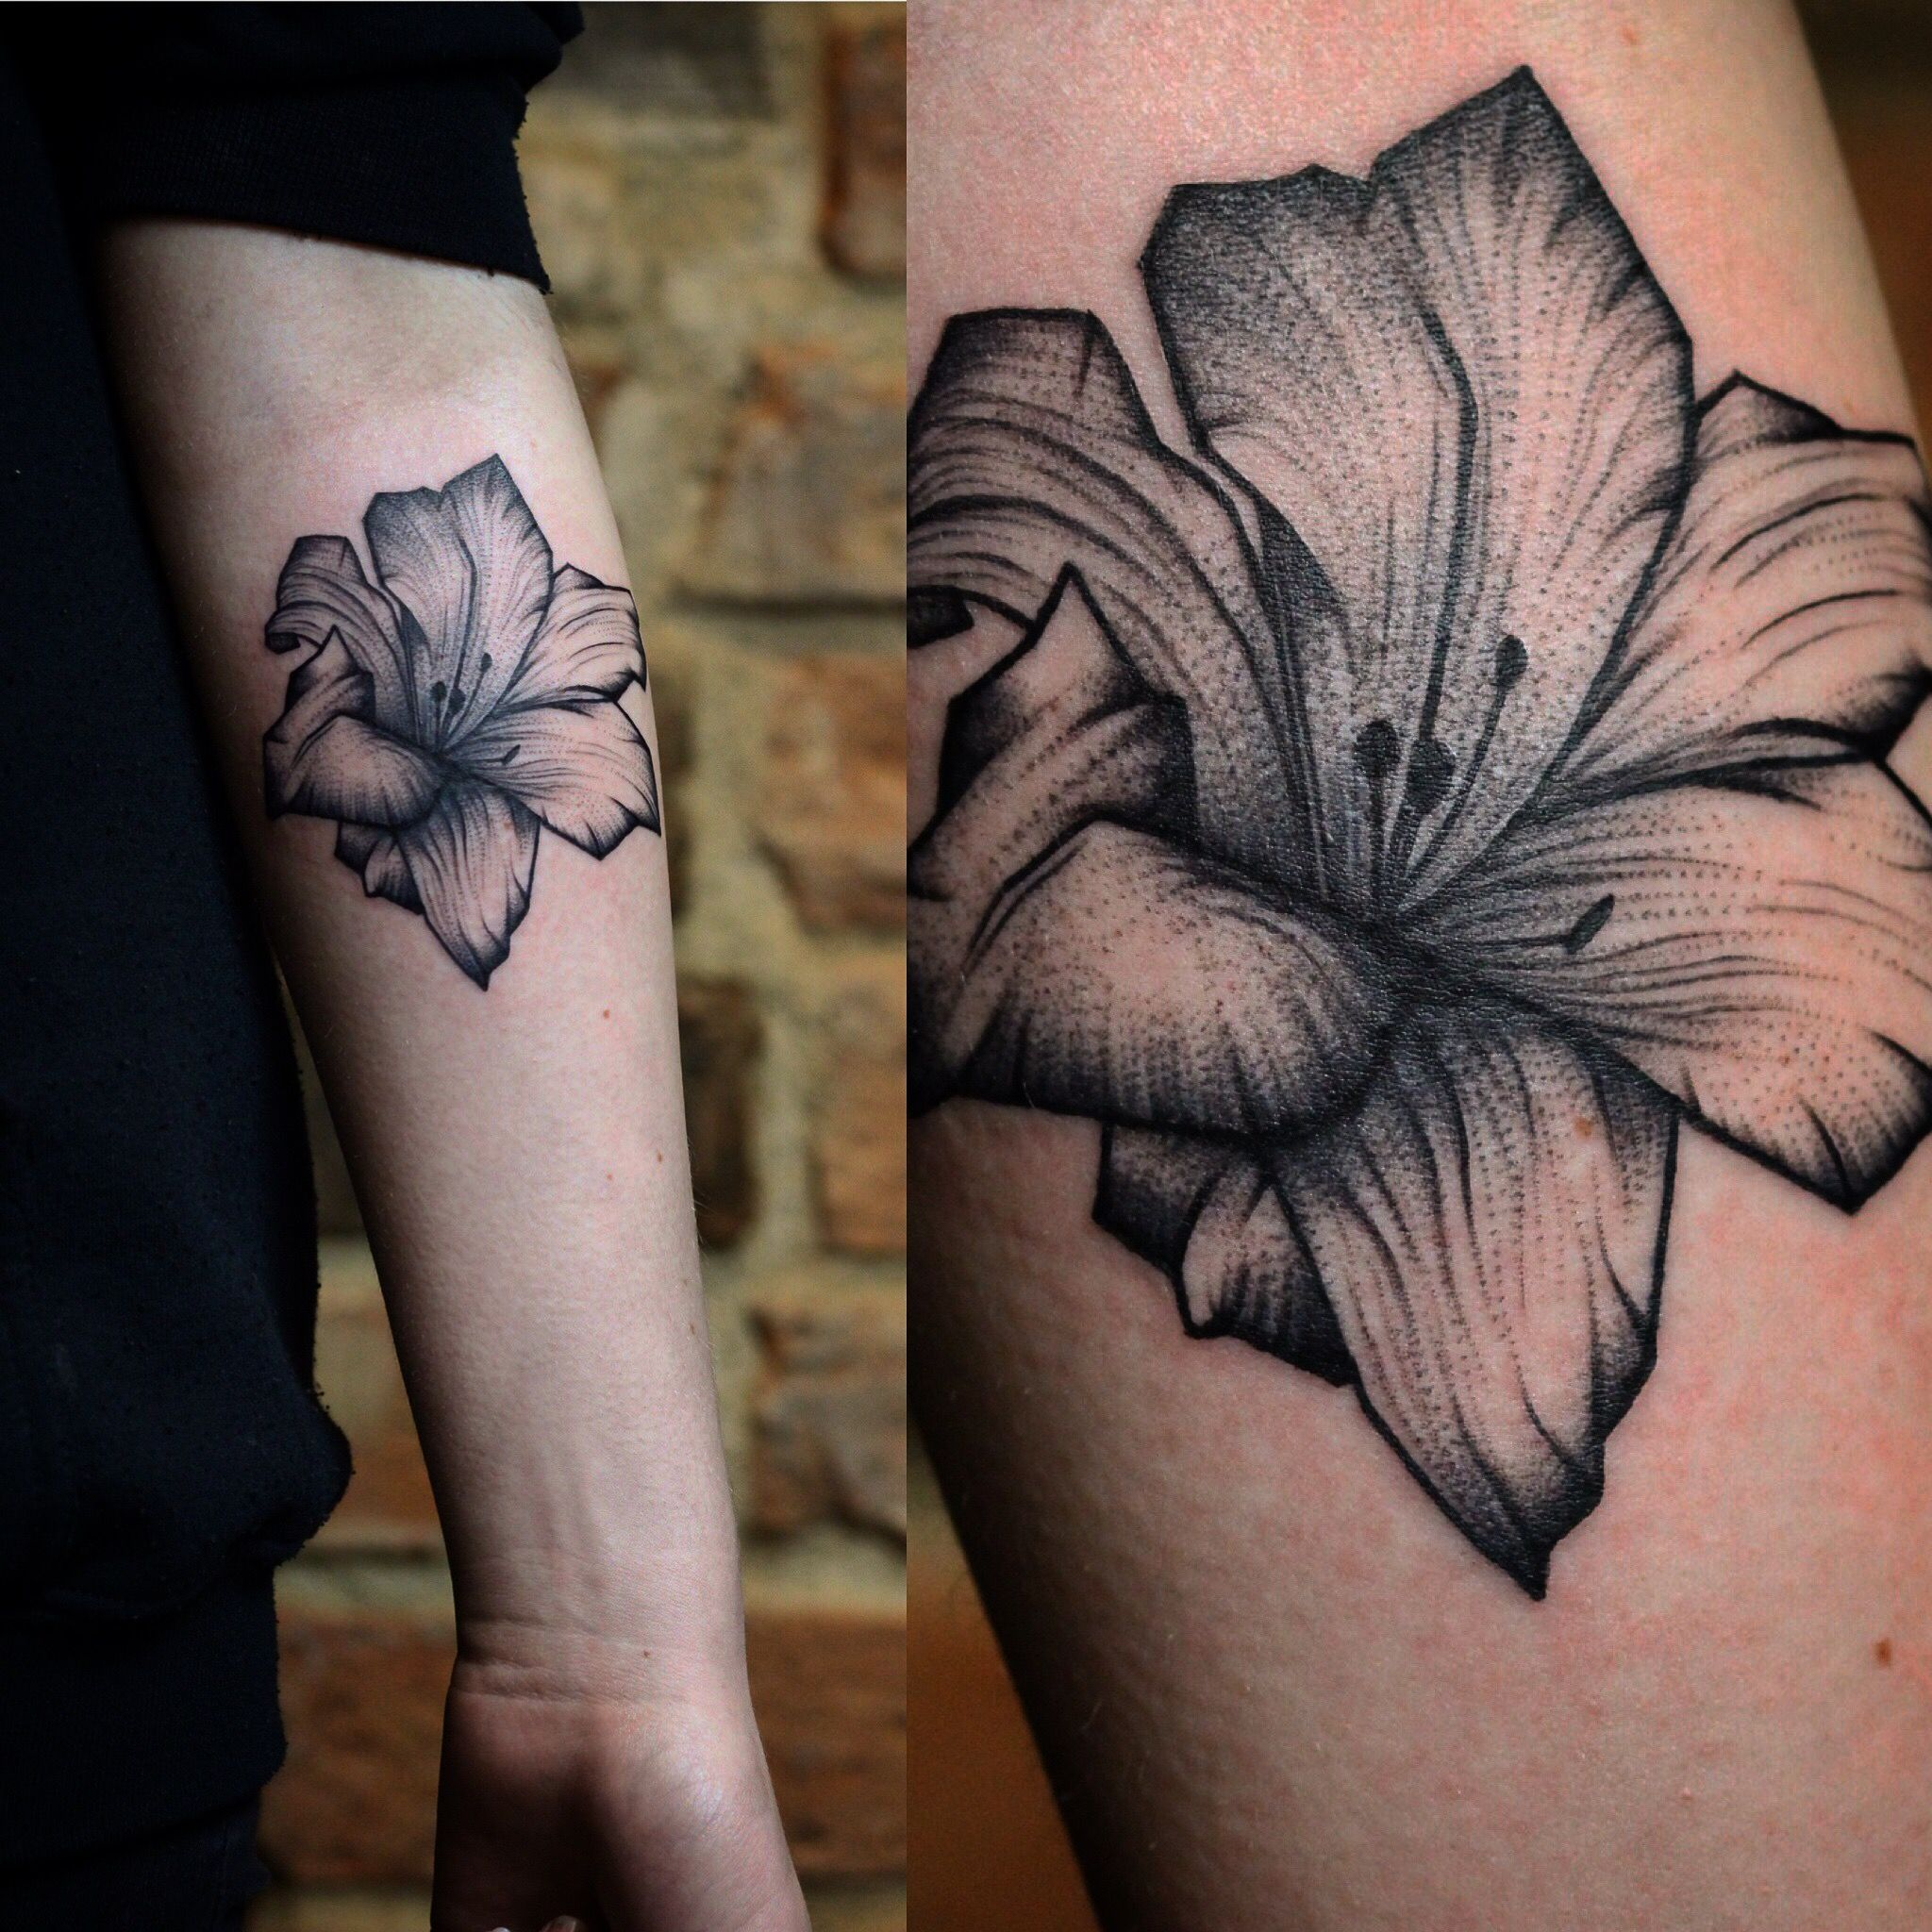 Delicate Water Lily Tattoo Flowertattoo Delicatetattoo Dotwork